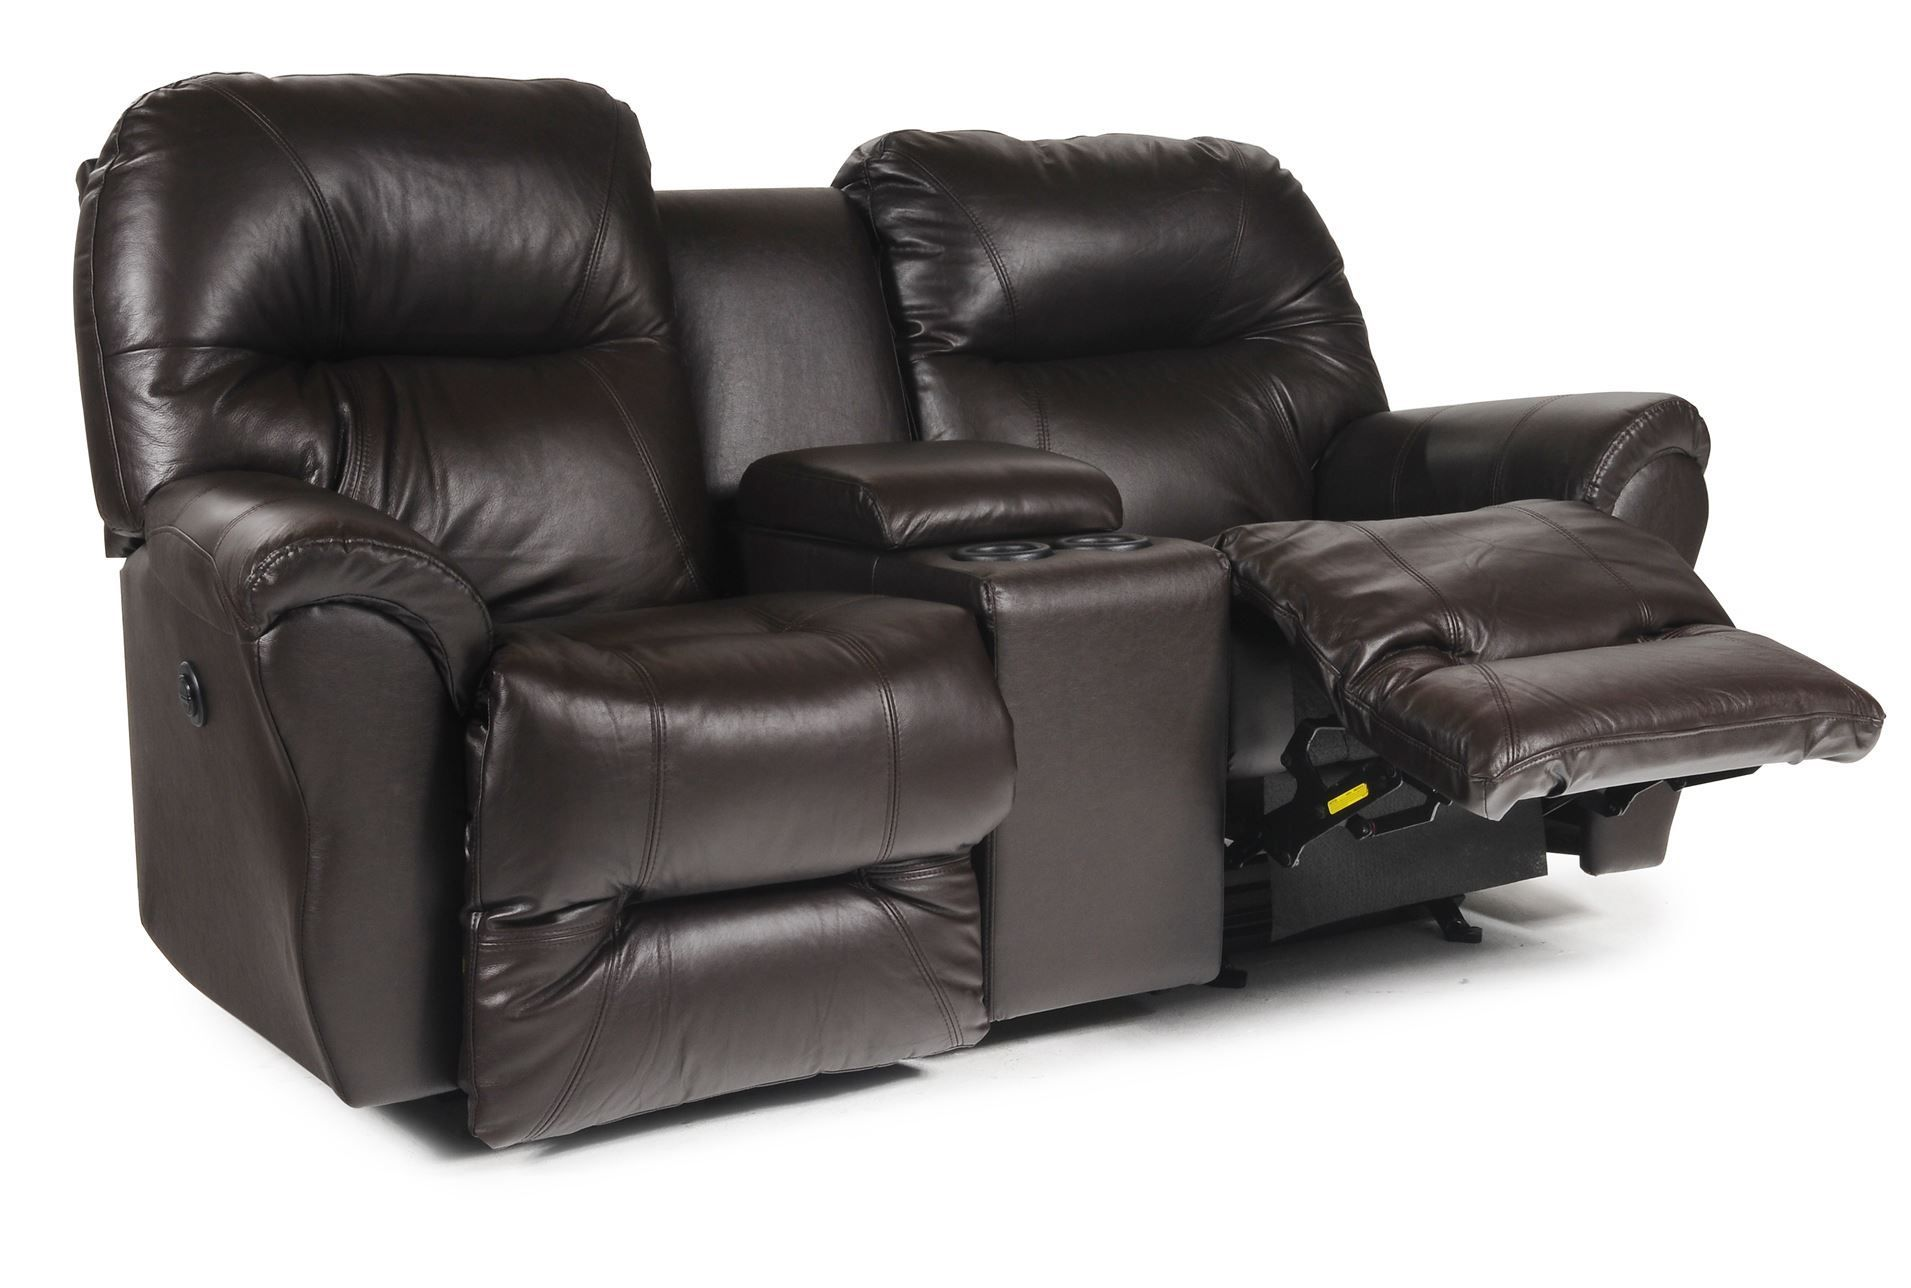 x loveseat recliner rocking dual to rocker awesome click reclining enlarge double